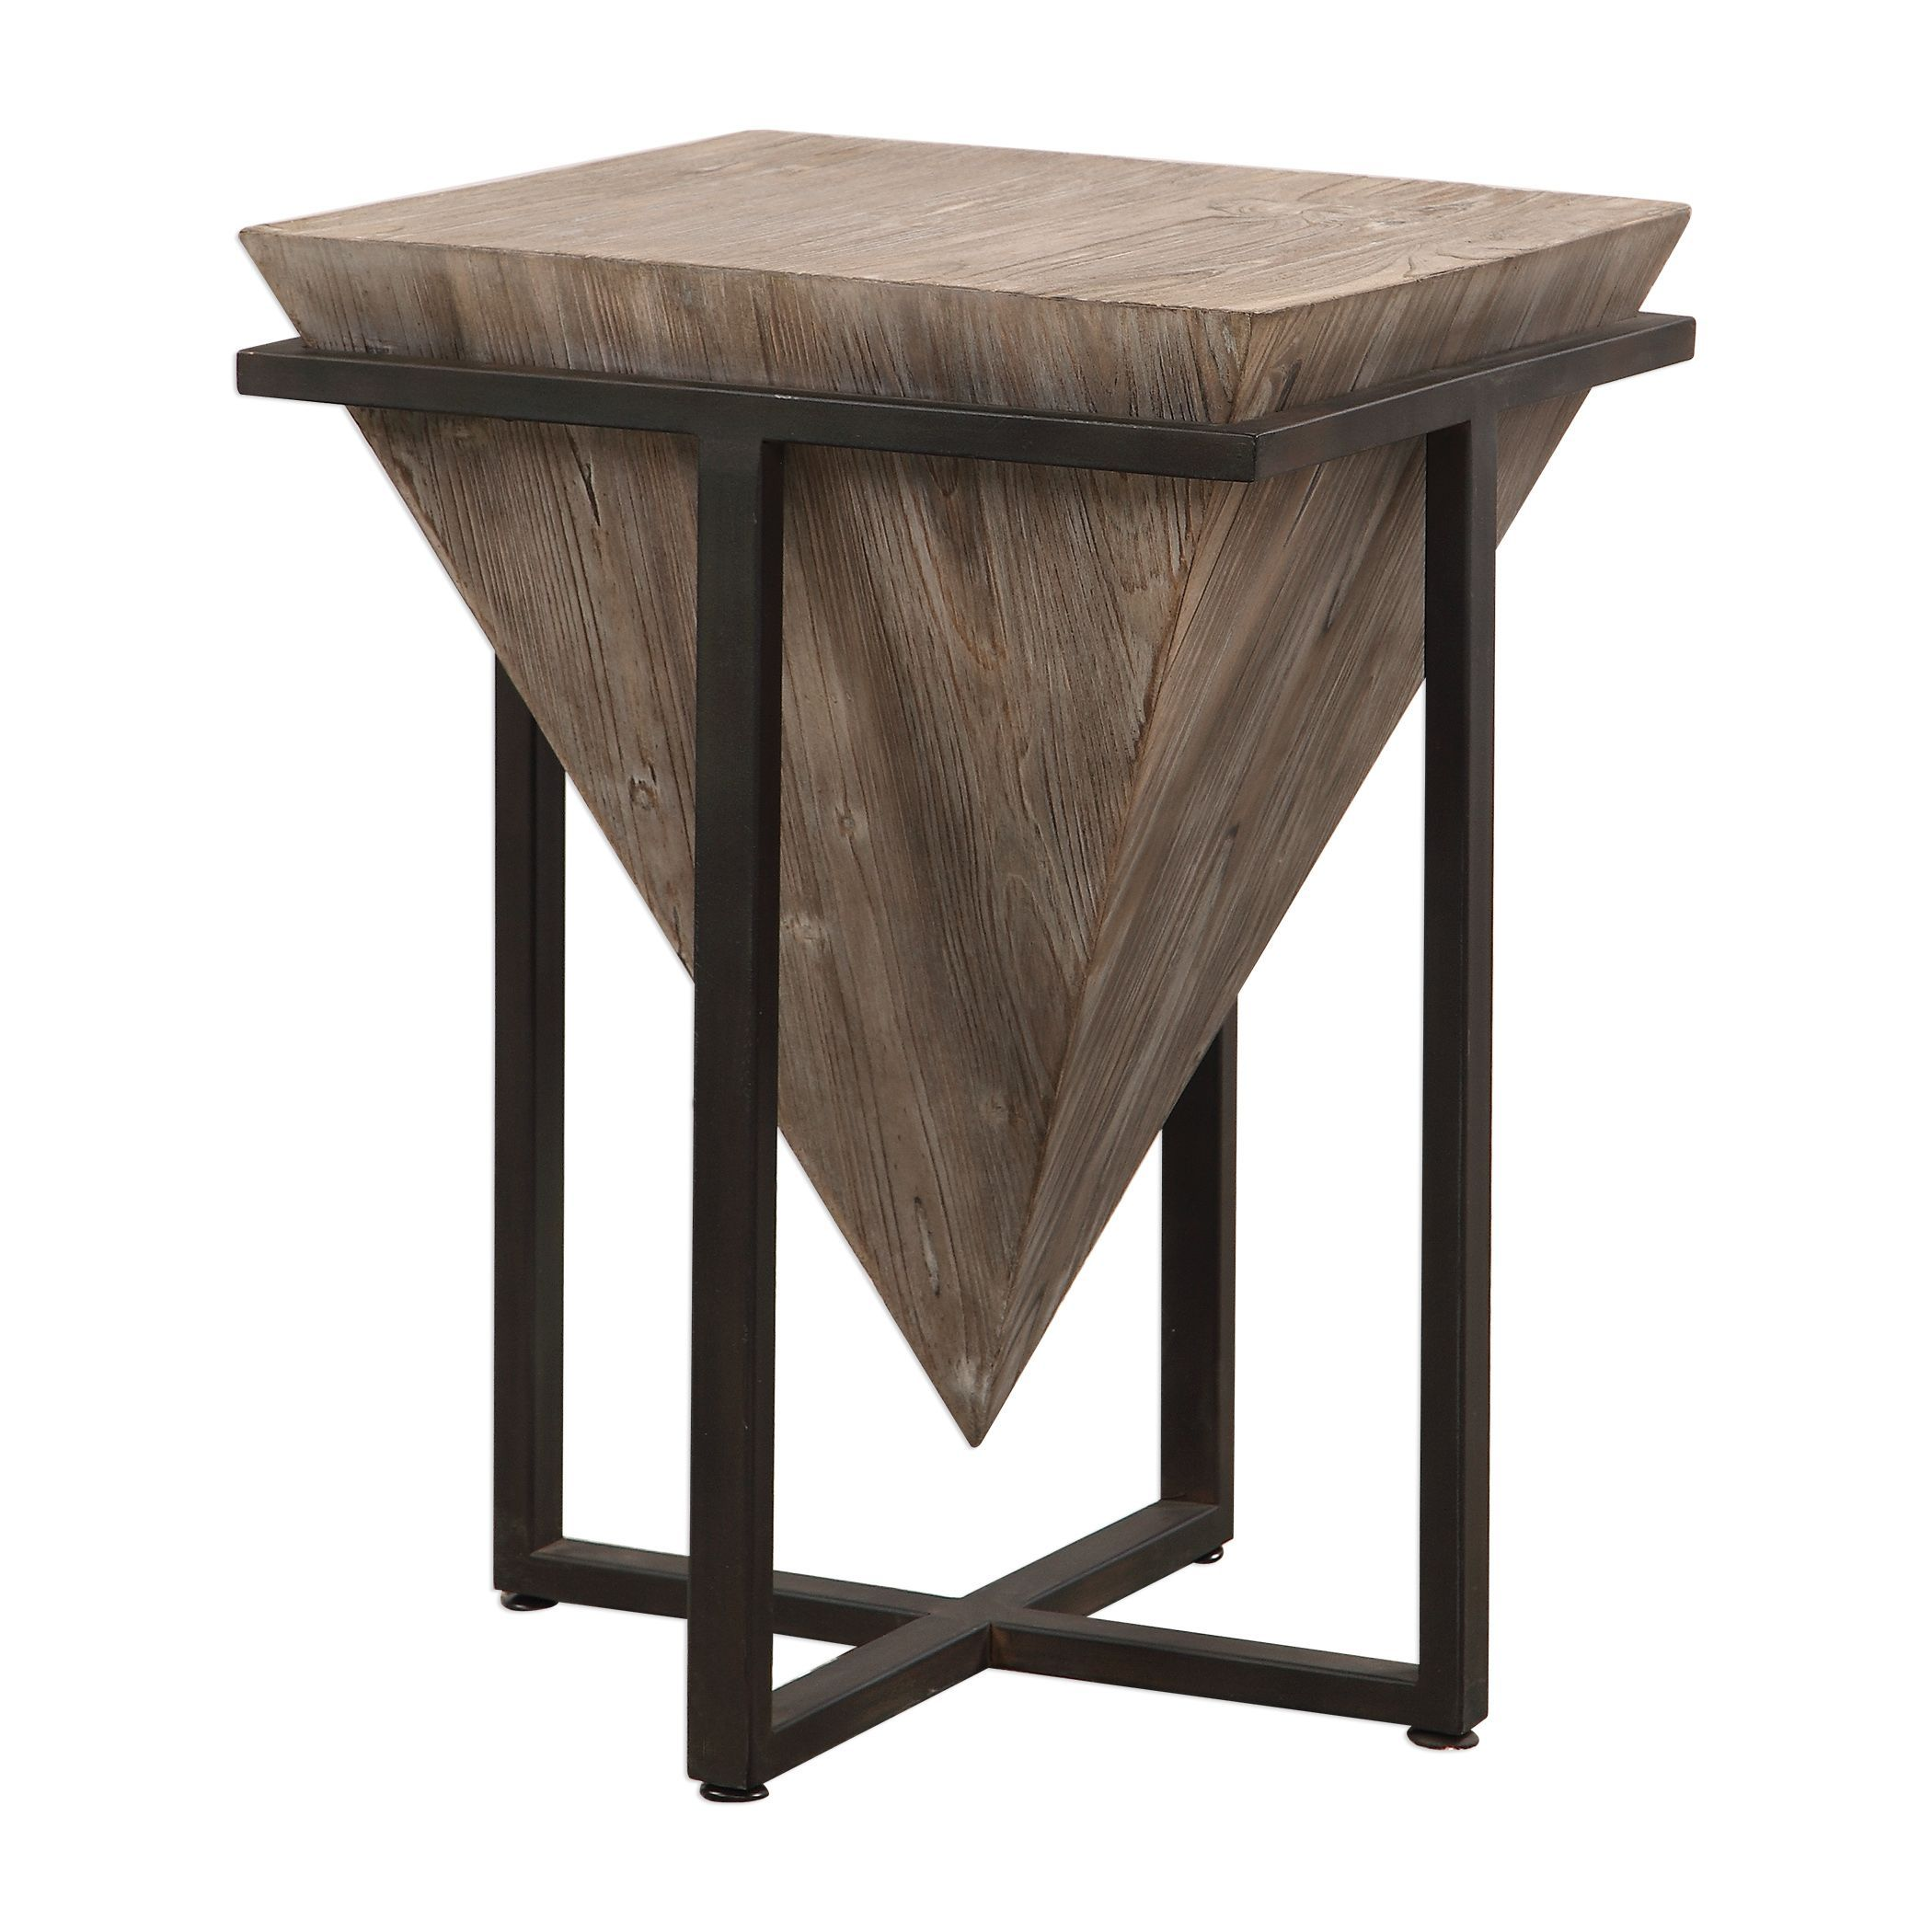 bertrand contemporary gray wash wood accent table uttermost copper mini coffee antique marble end tables champagne mirrored furniture oval glass top folding chair patio umbrella